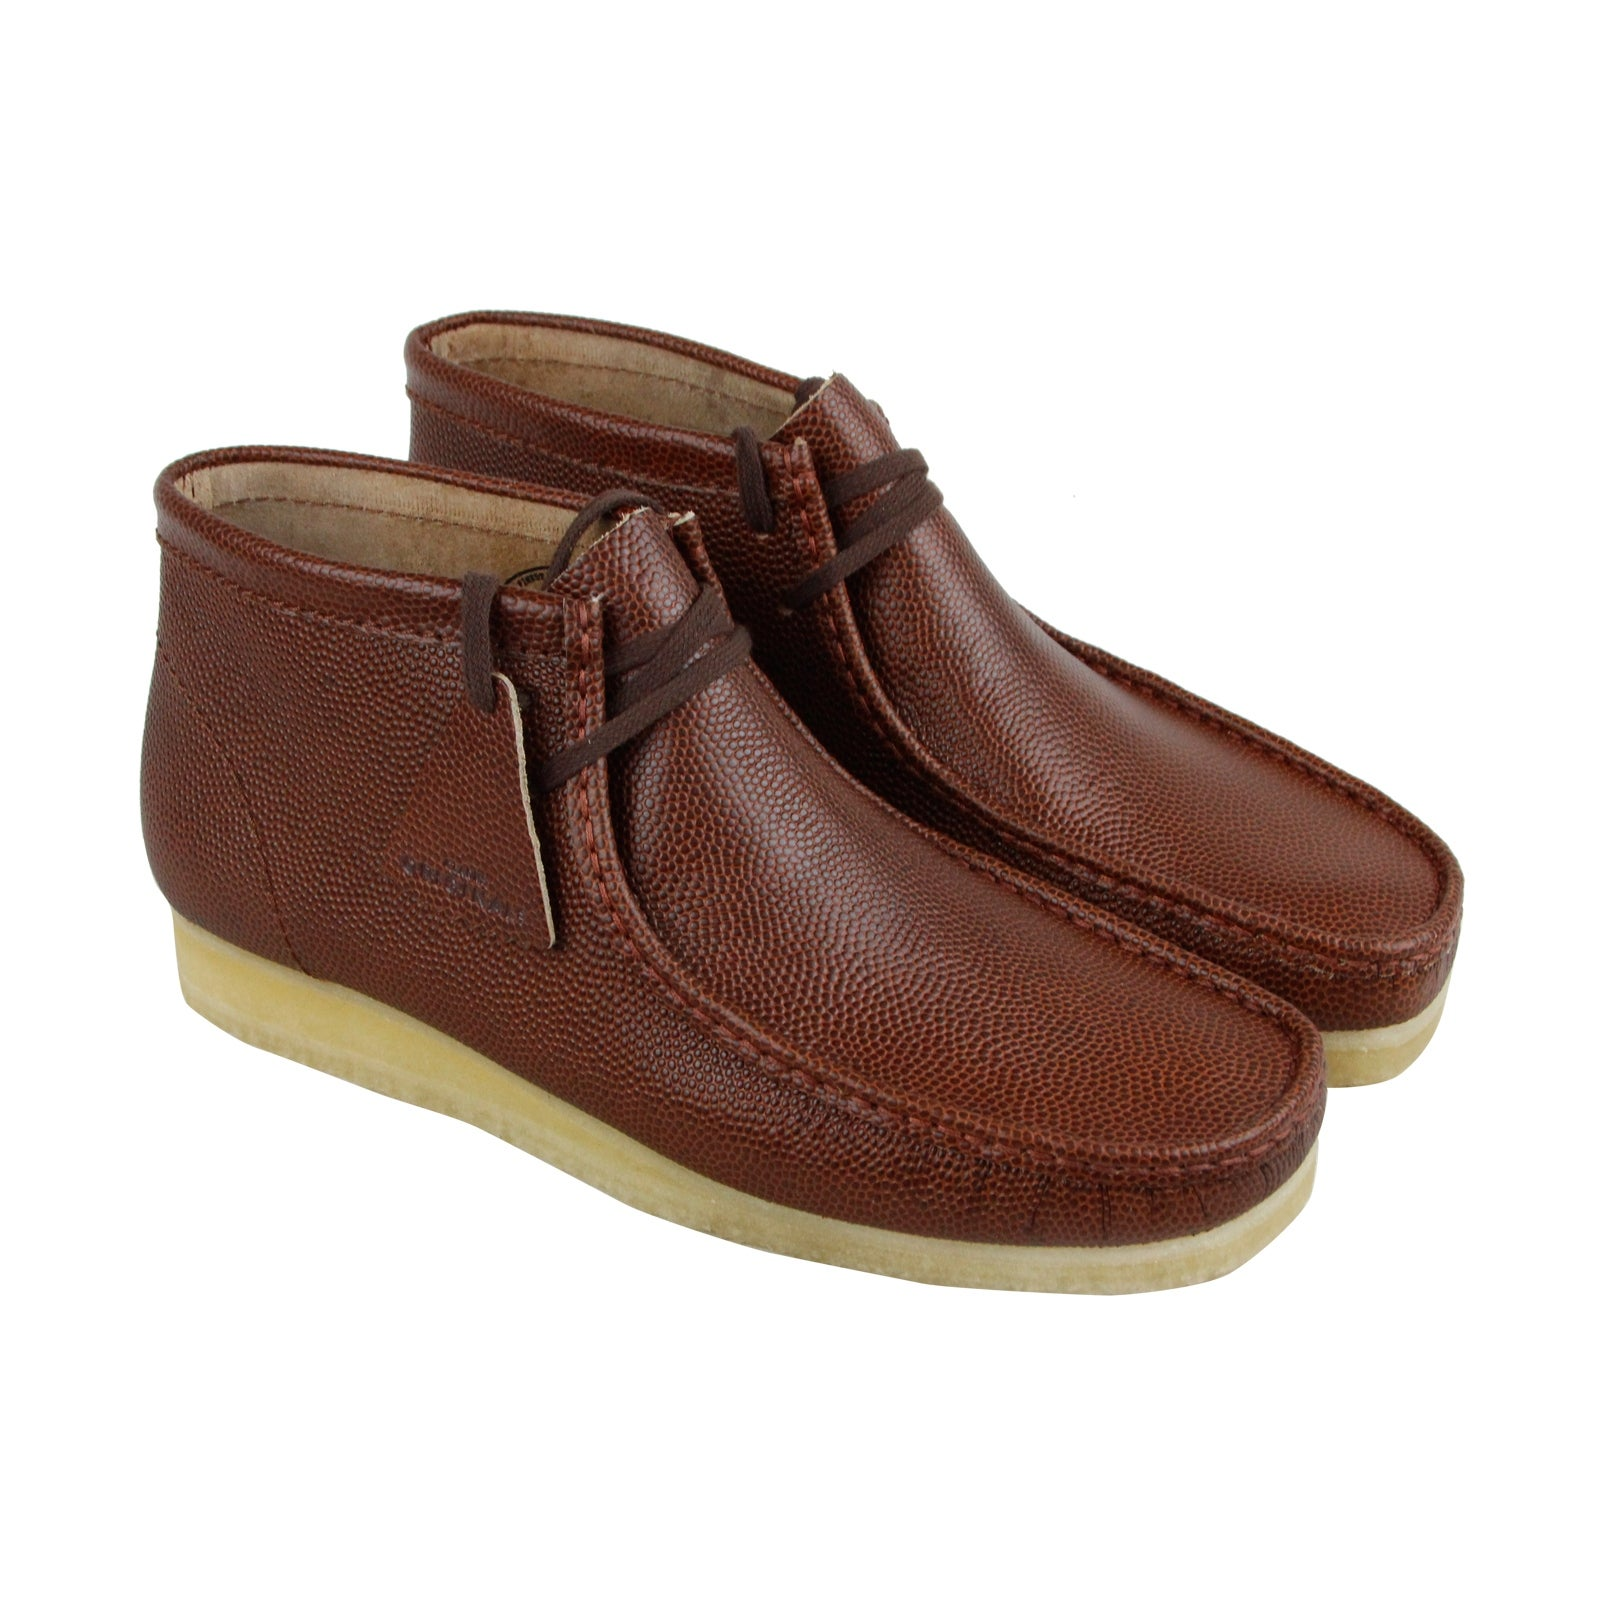 Shop Clarks Wallabee Boot Mens Red Leather Casual Dress Lace Up Chukkas  Shoes - Free Shipping Today - Overstock.com - 21935182